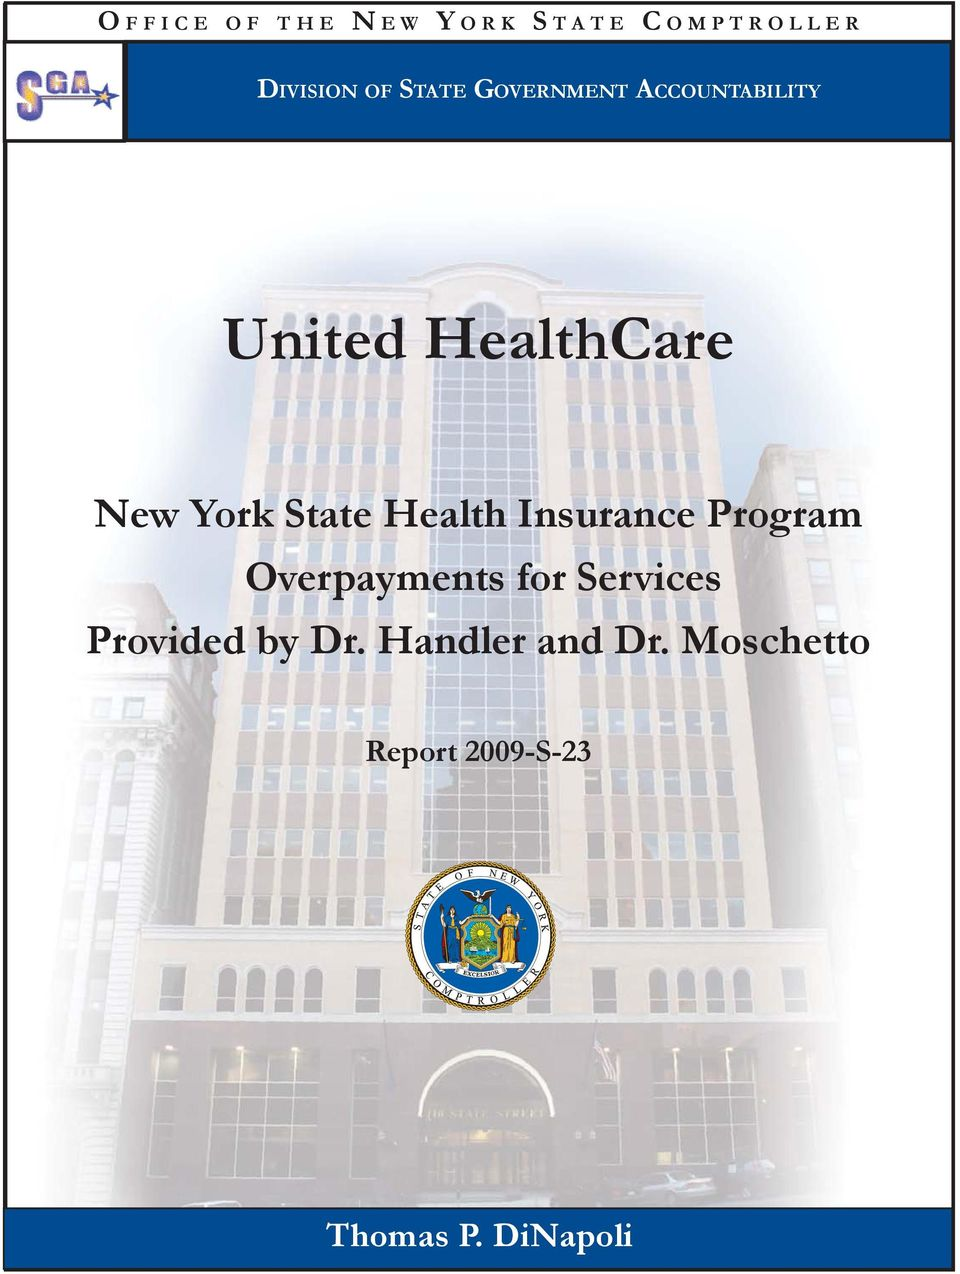 Health Insurance Program Overpayments for Services Provided